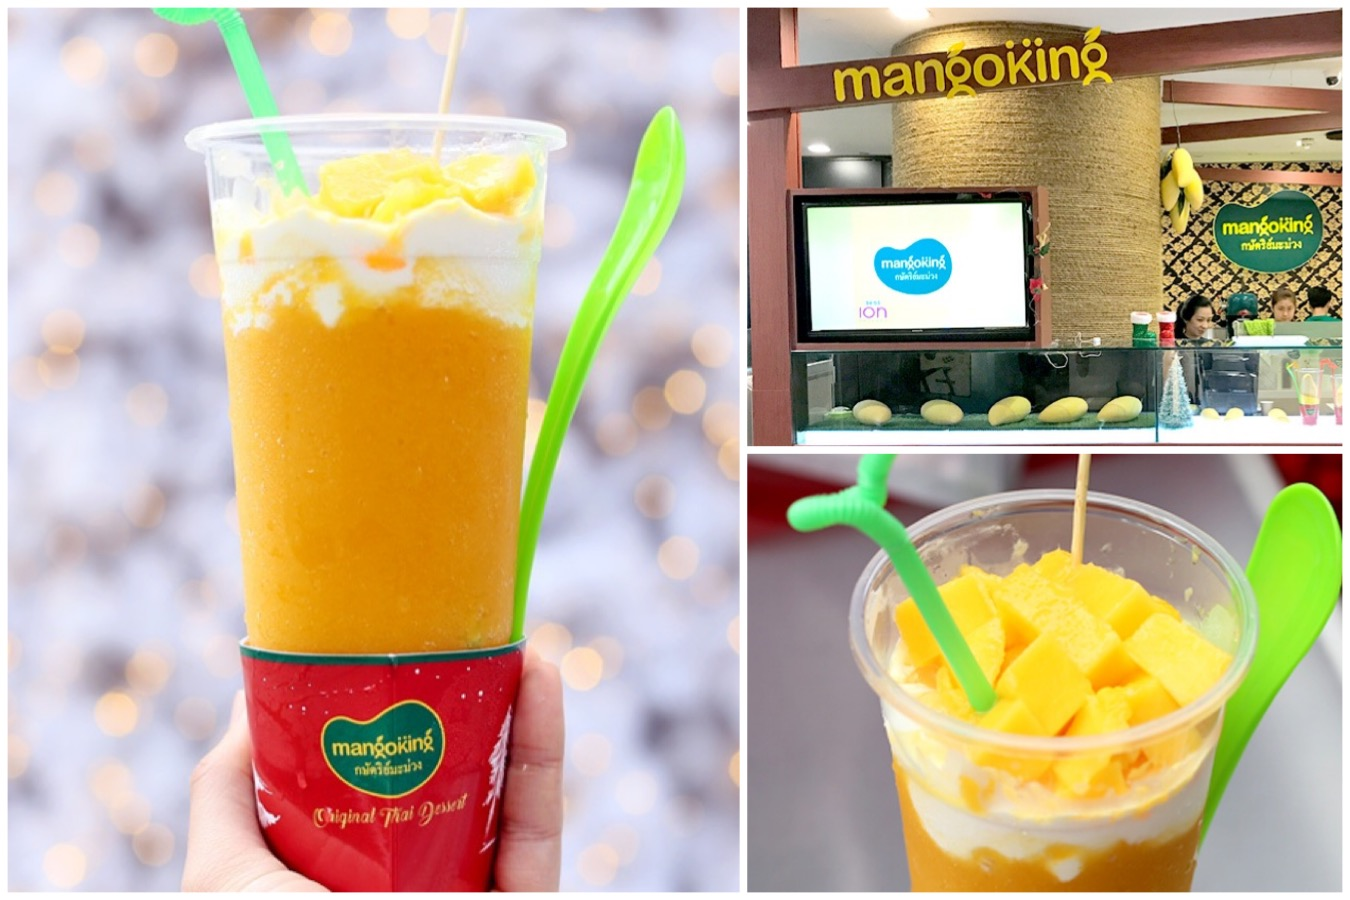 [Closed] Mango King - Sweet Thai Mango Dessert Cups Arrive In Singapore, At ION Orchard